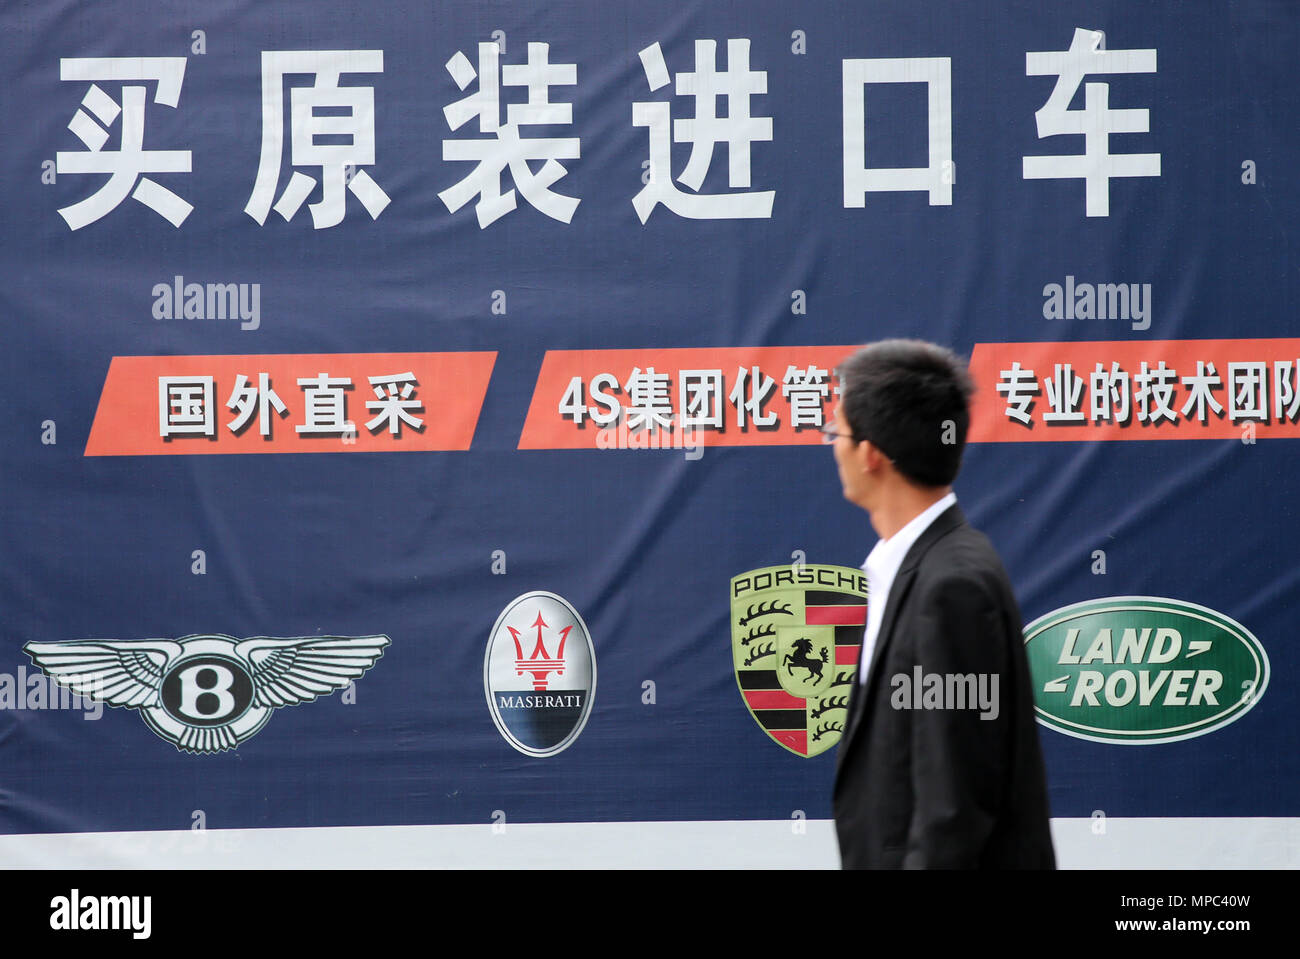 (180522) -- NANTONG, May 22, 2018 (Xinhua) -- A man walks past an auto billboard in Nantong, east China's Jiangsu Province, May 22, 2018. China will cut import tariffs on vehicles and auto parts starting July 1, the Ministry of Finance (MOF) announced Tuesday. For car imports, the 25-percent tariff levied on 135 items and the 20-percent duty on four items will both be slashed to 15 percent, down 40 percent and 25 percent respectively. Import tariffs for 79 items of auto parts will be reduced to 6 percent from the current levels of 8 percent, 10 percent, 15 percent, 20 percent, and 25 percent, - Stock Image